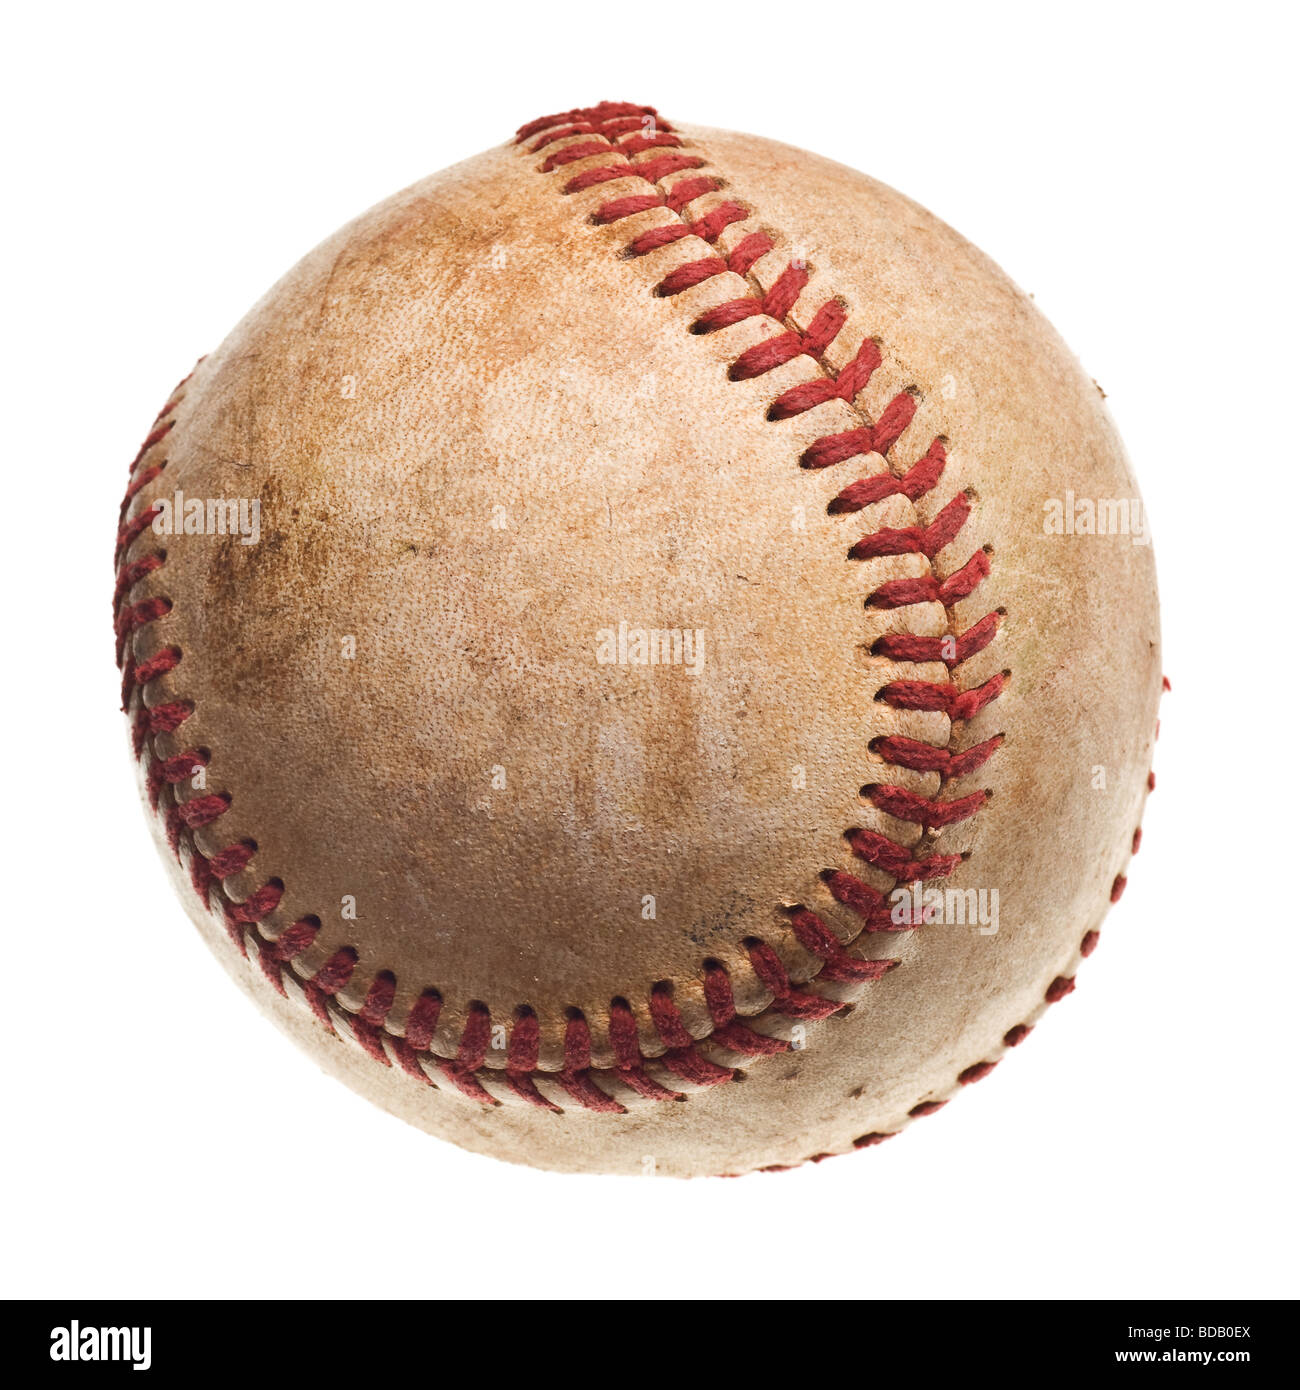 baseball with red stitching baseball isolated on white background - Stock Image